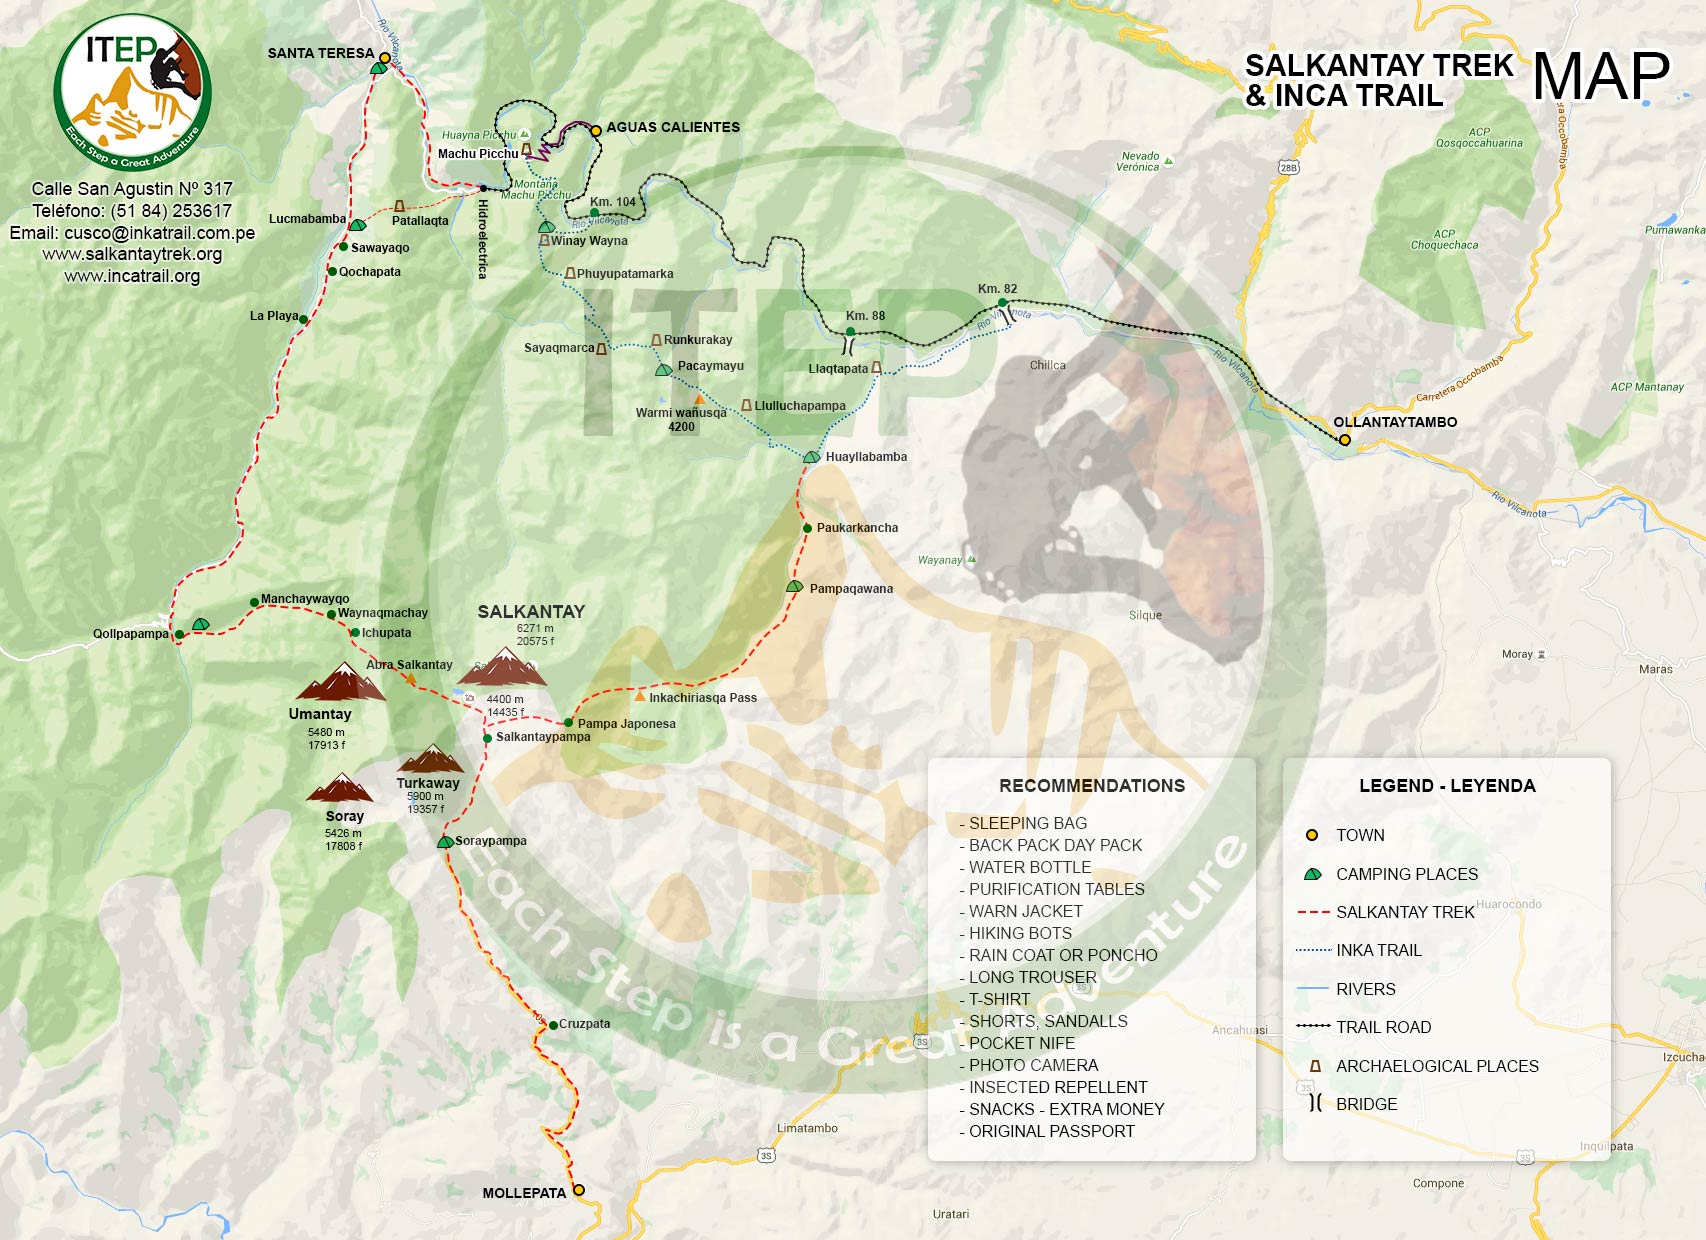 Salkantay Trek Map to Machu Picchu on eiffel tower, angkor wat, cartagena map, chichen itza map, huayna picchu, lake titicaca map, latin america map, hoover dam, inca map, iguazu falls map, statue of liberty, angel falls map, inca empire, nazca lines, panama canal, palenque map, sacsayhuaman map, tikal map, andes mountains map, teotihuacán, teotihuacan map, south america, world map, chichen itza, hoover dam map, peru map, tiwanaku map, golden gate bridge, inca trail to machu picchu, cuzco map, cusco map, brooklyn bridge, angkor wat map, hagia sophia, south america map,